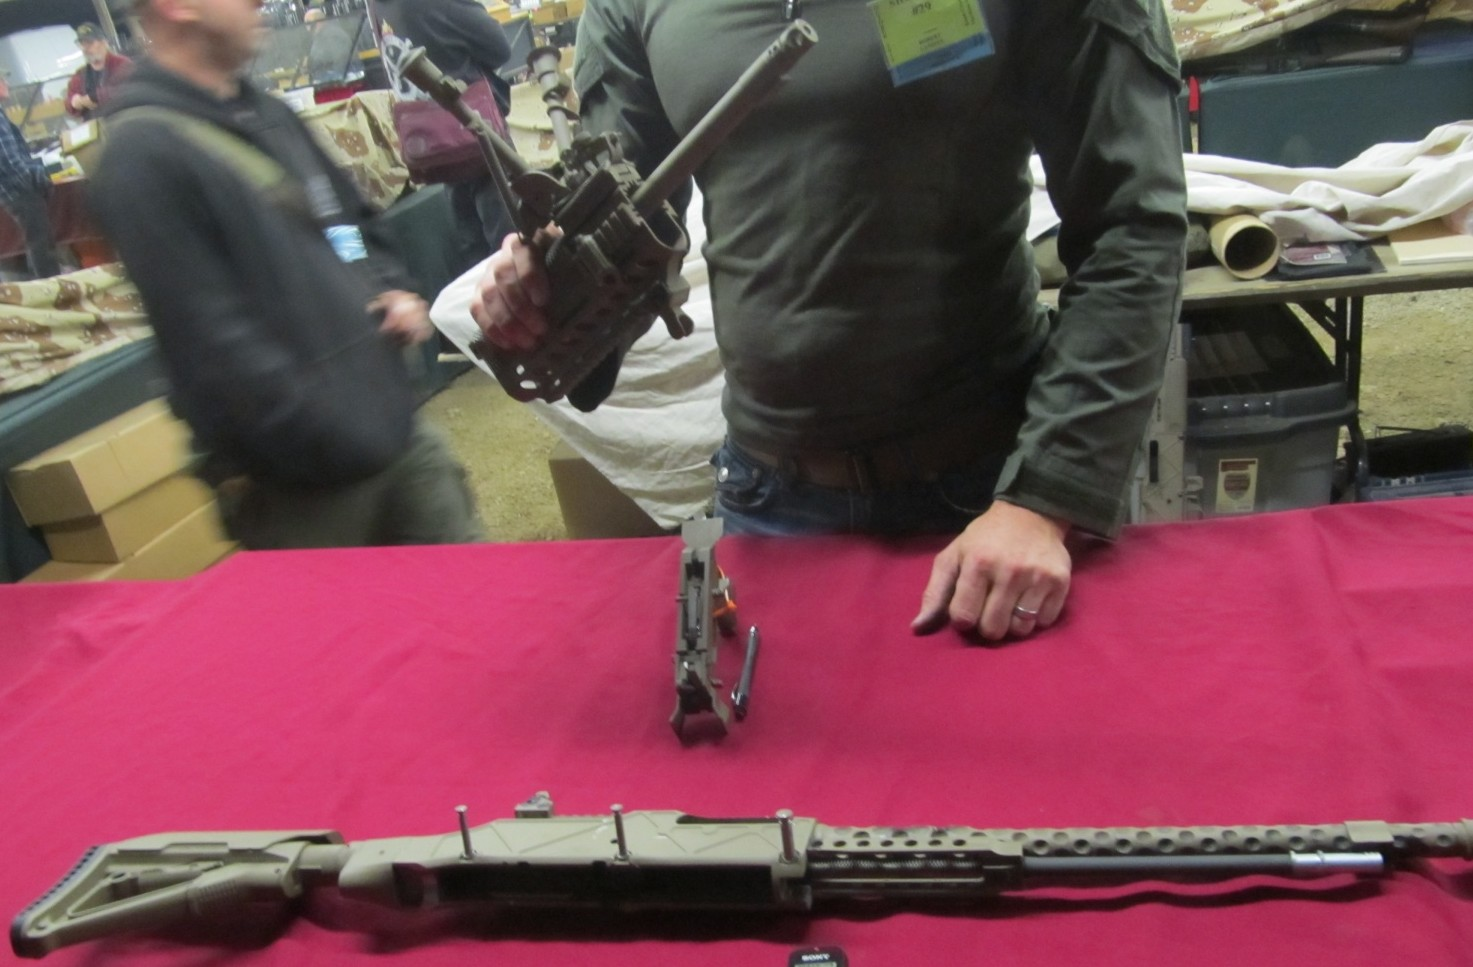 Landies showing the HCAR fully field stripped. Notice how the handguard comes off just like a H&K M27.